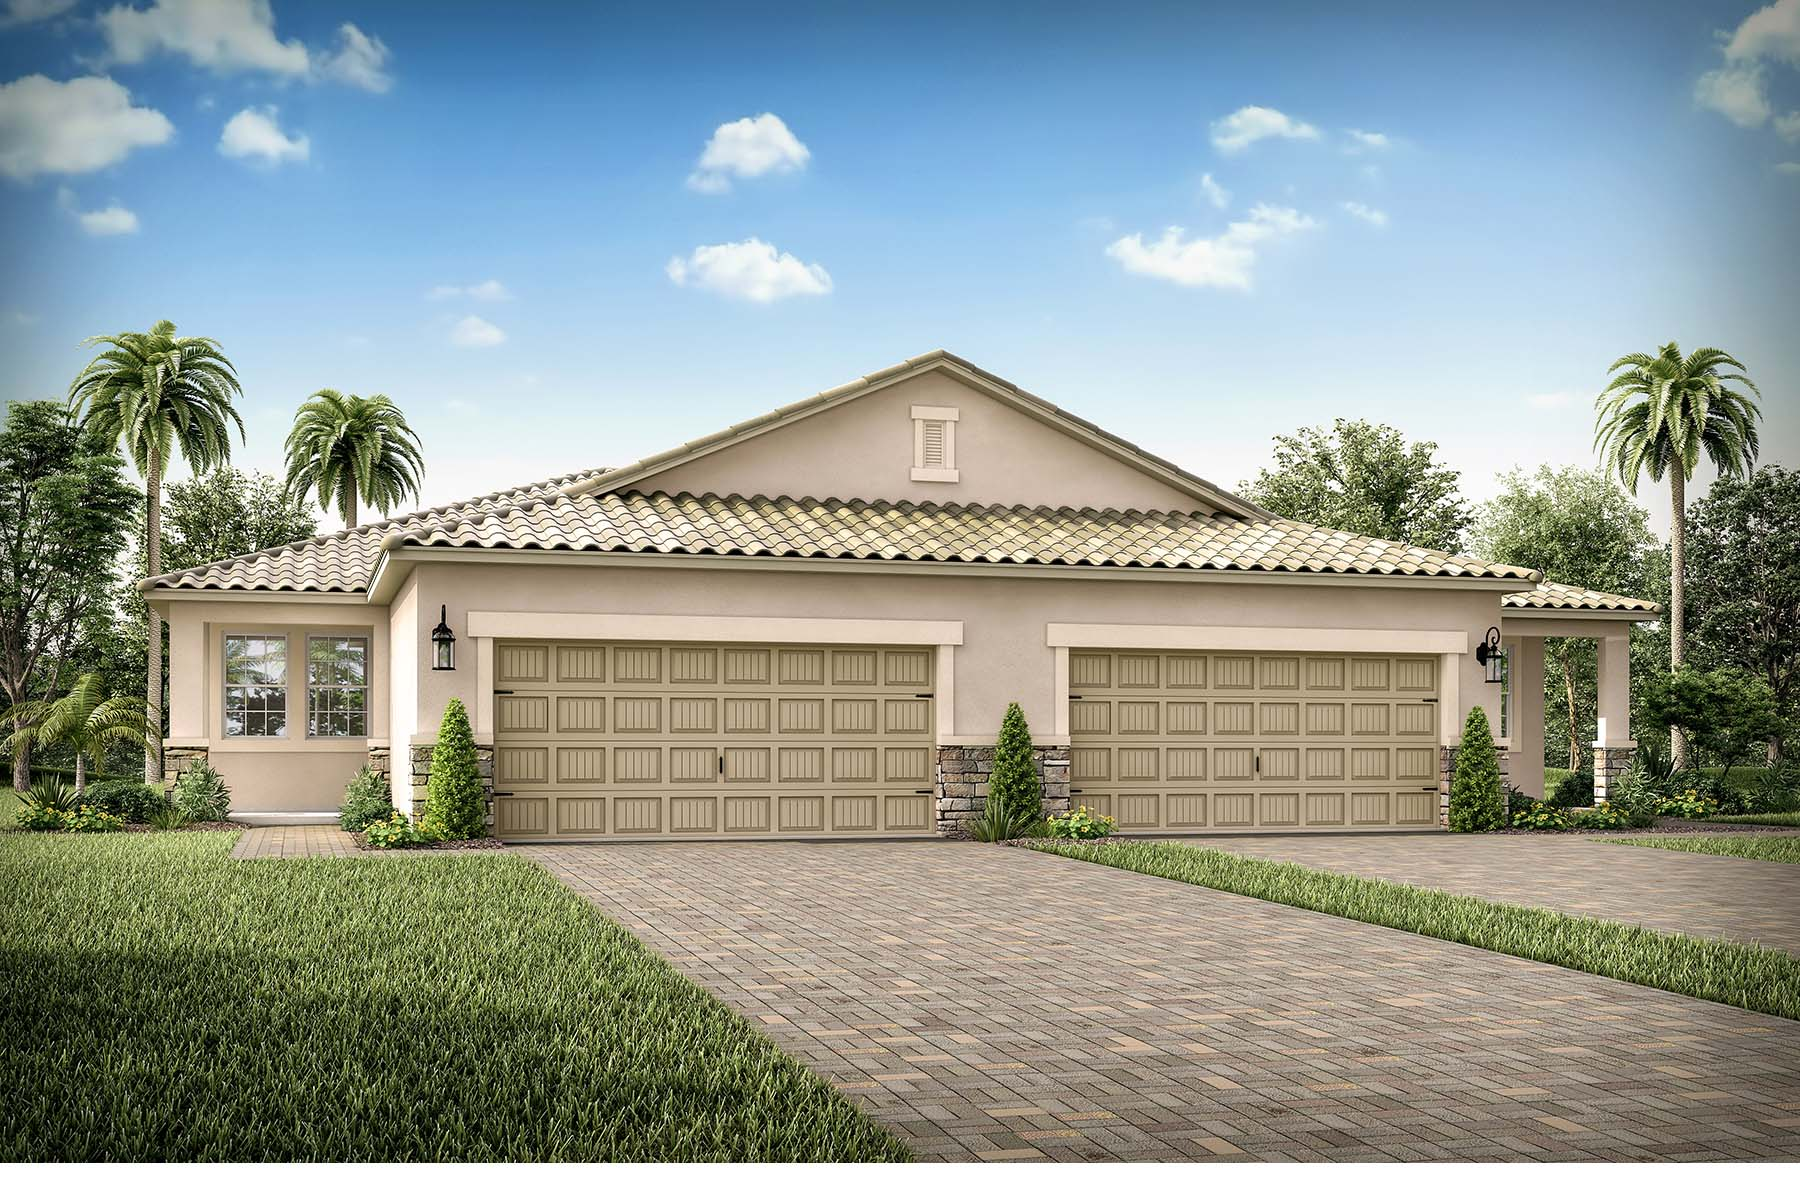 Largo Plan Elevation Front at Bonavie Cove in Fort Myers Florida by Mattamy Homes